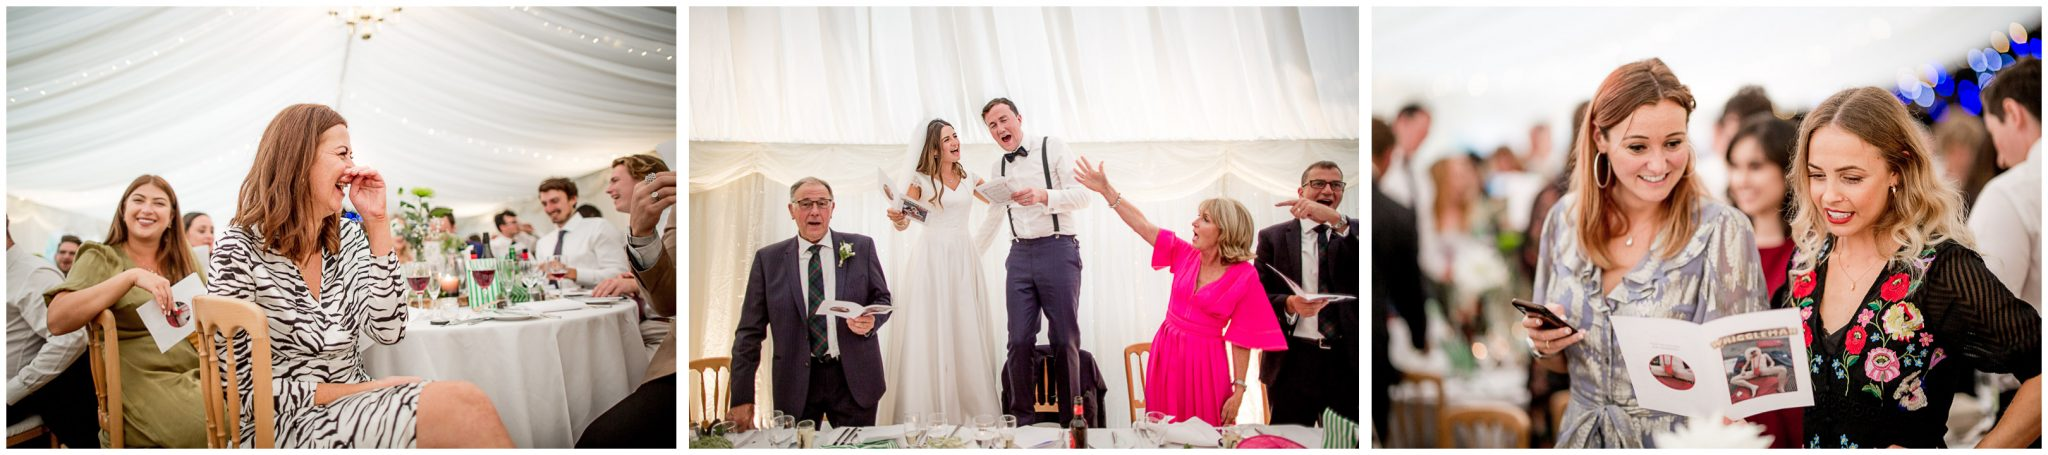 Wedding guests react to the best man's speech